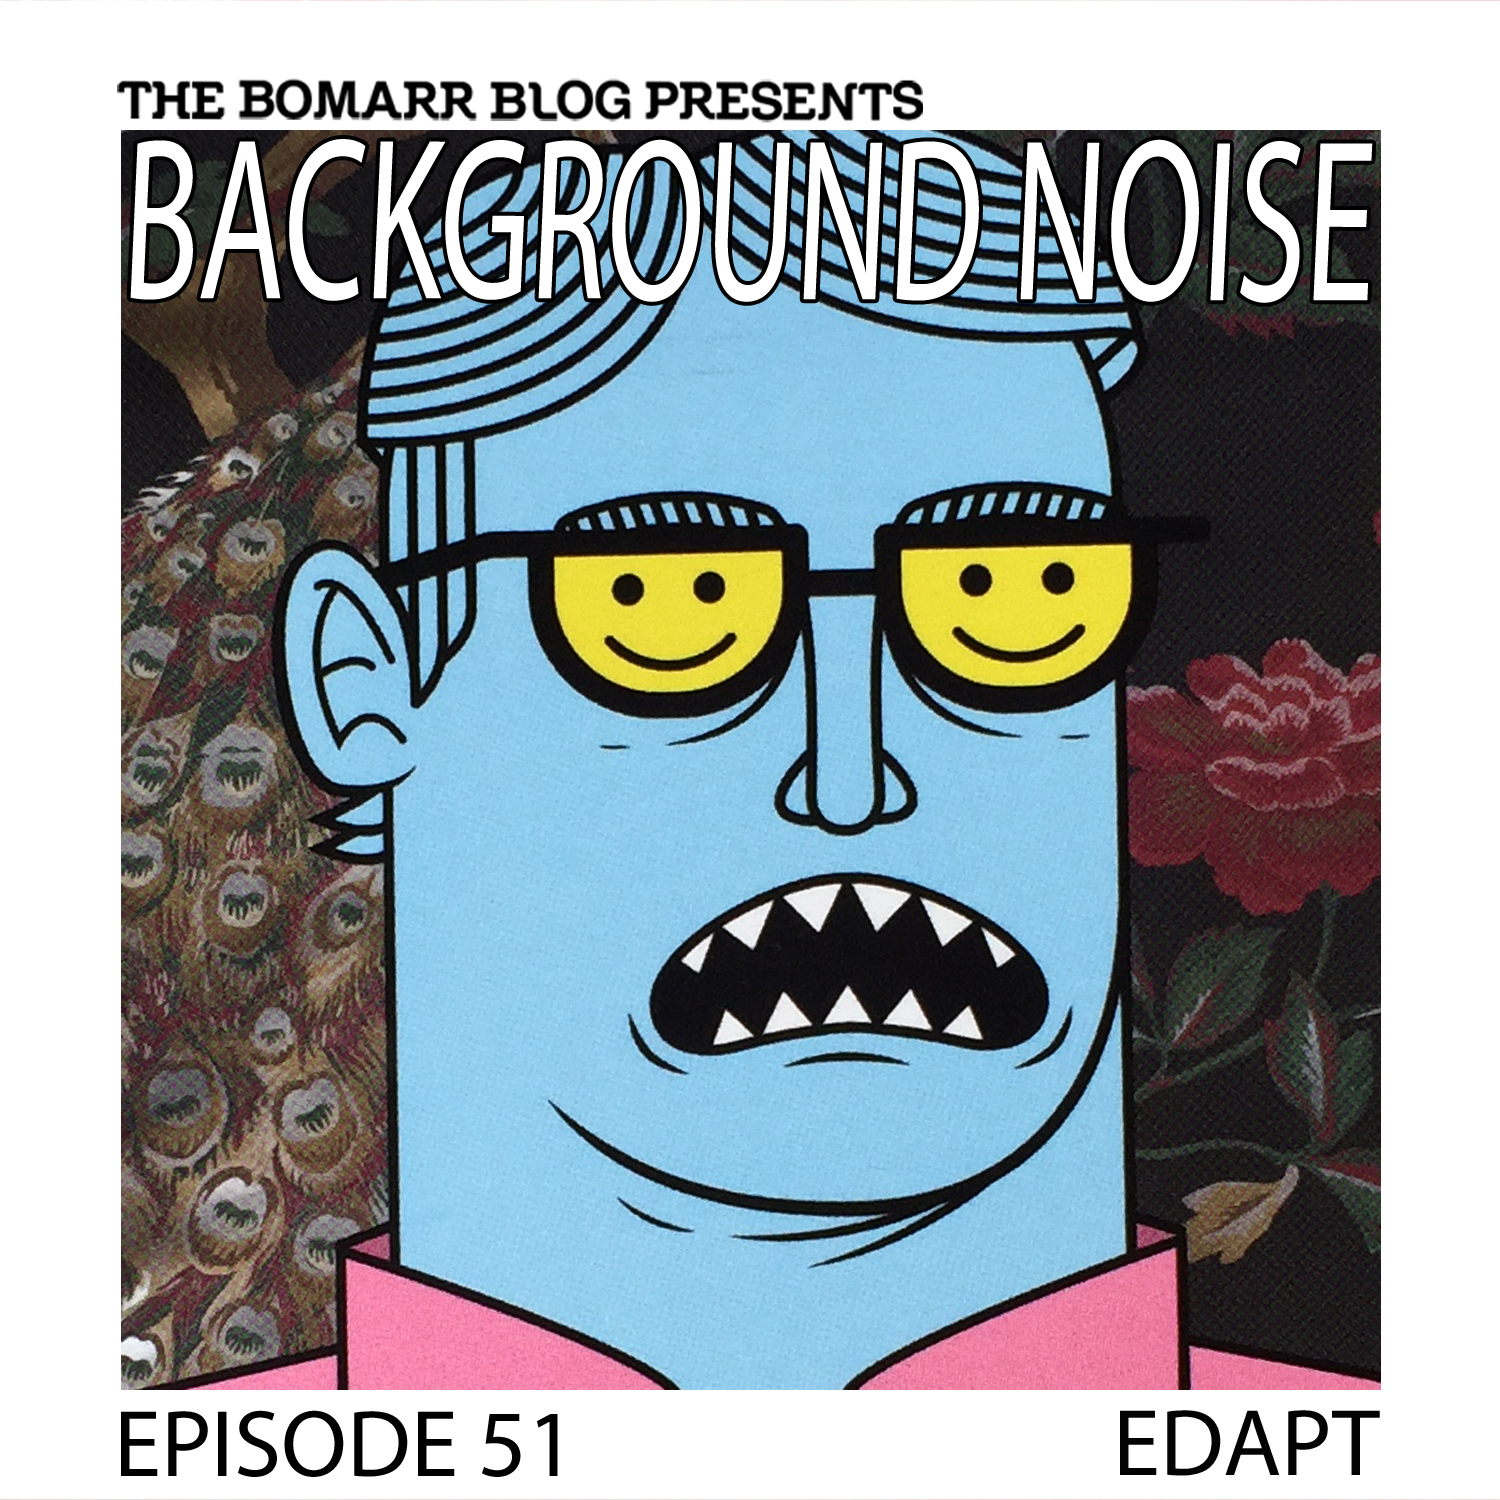 THE BACKGROUND NOISE PODCAST SERIES FOCUSES ON THE MUSIC THAT ARTISTS LISTEN TO WHEN THEY WORK, WHAT MUSIC INSPIRES THEM, OR JUST MUSIC THEY LIKE. THIS WEEK, IN EPISODE 51, THE FOCUS IS ON ARTIST EDAPT